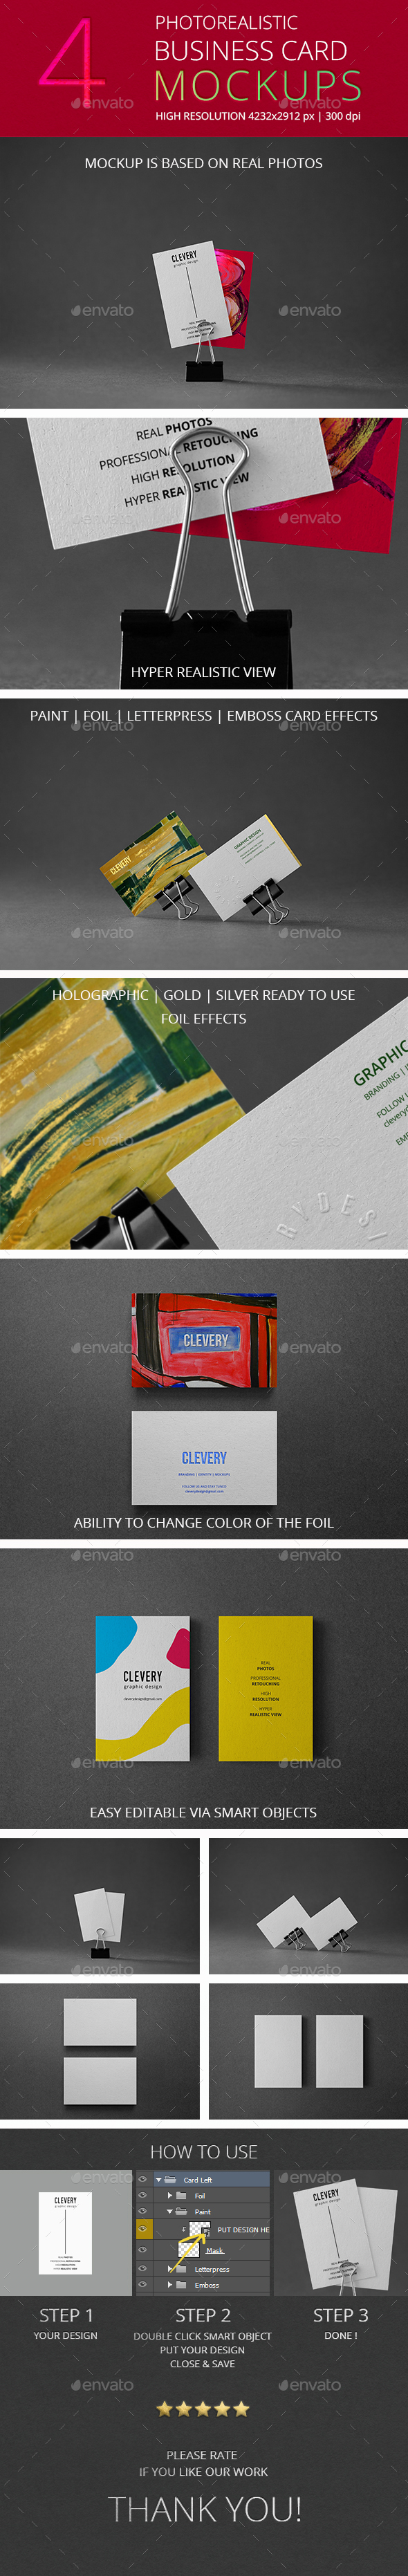 Photorealistic Business Card Mockup Vol 3.0 - Business Cards Print